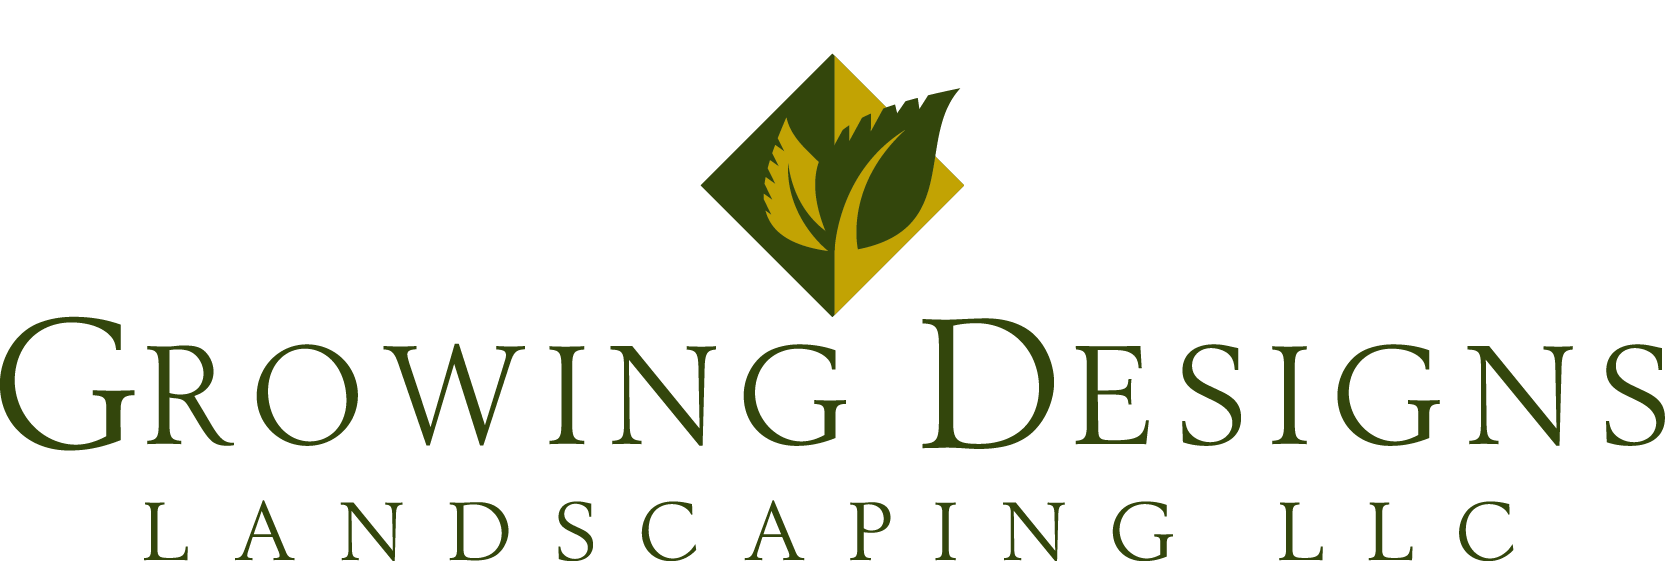 Growing Designs Logo